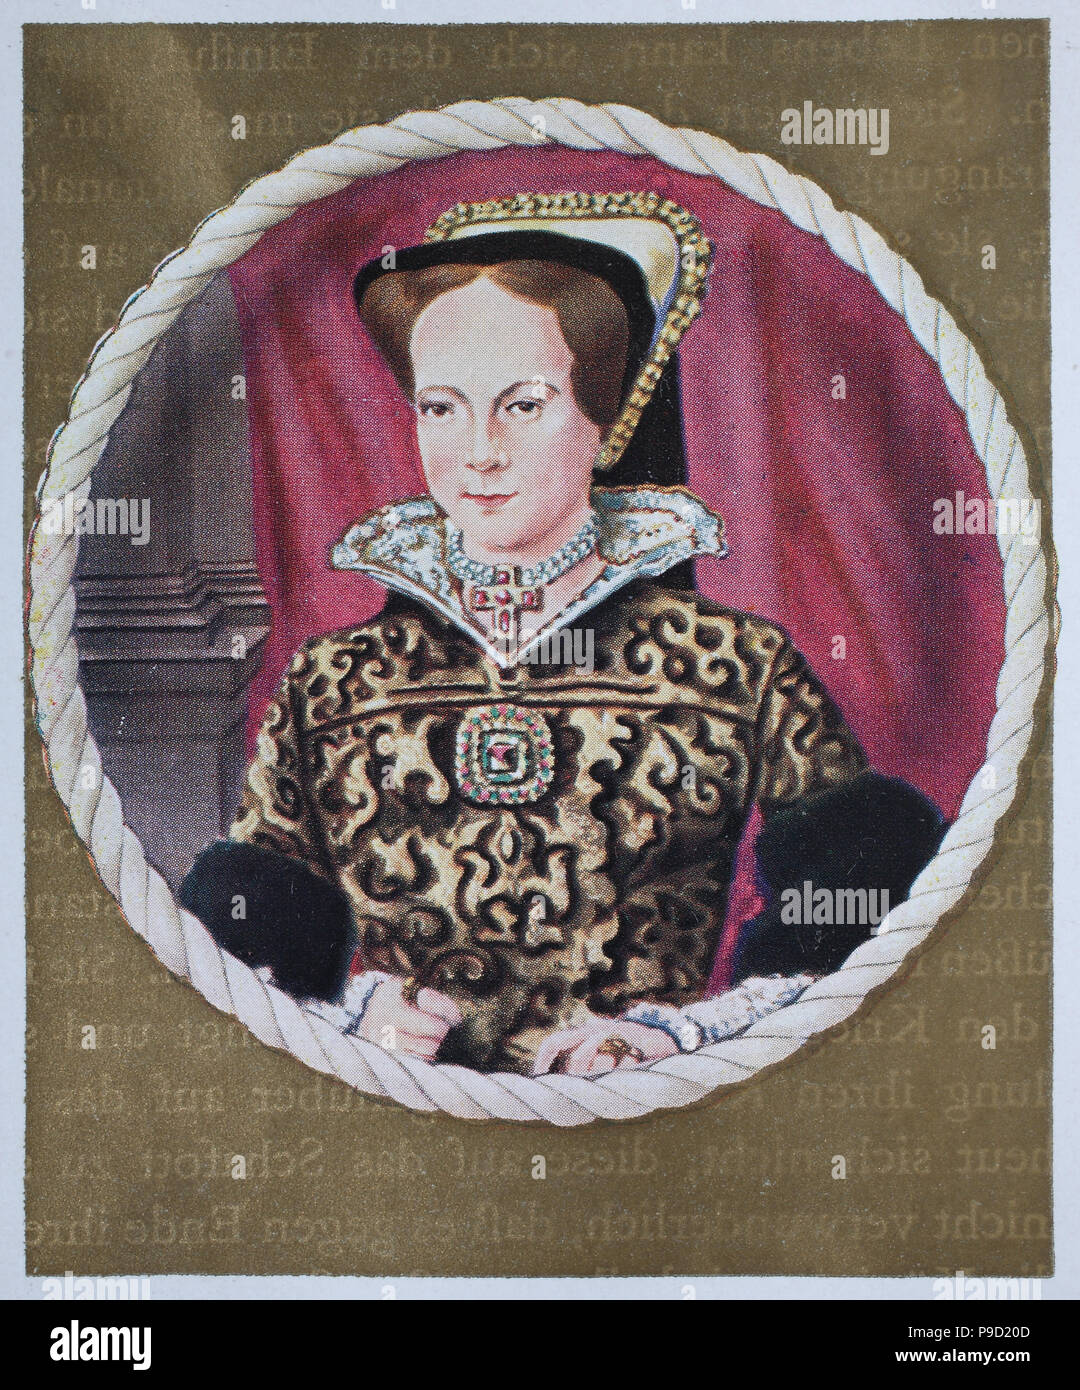 Mary I (18 February 1516 – 17 November 1558) was the Queen of England and Ireland from July 1553 until her death, digital improved reproduction of an original print from the year 1900 - Stock Image